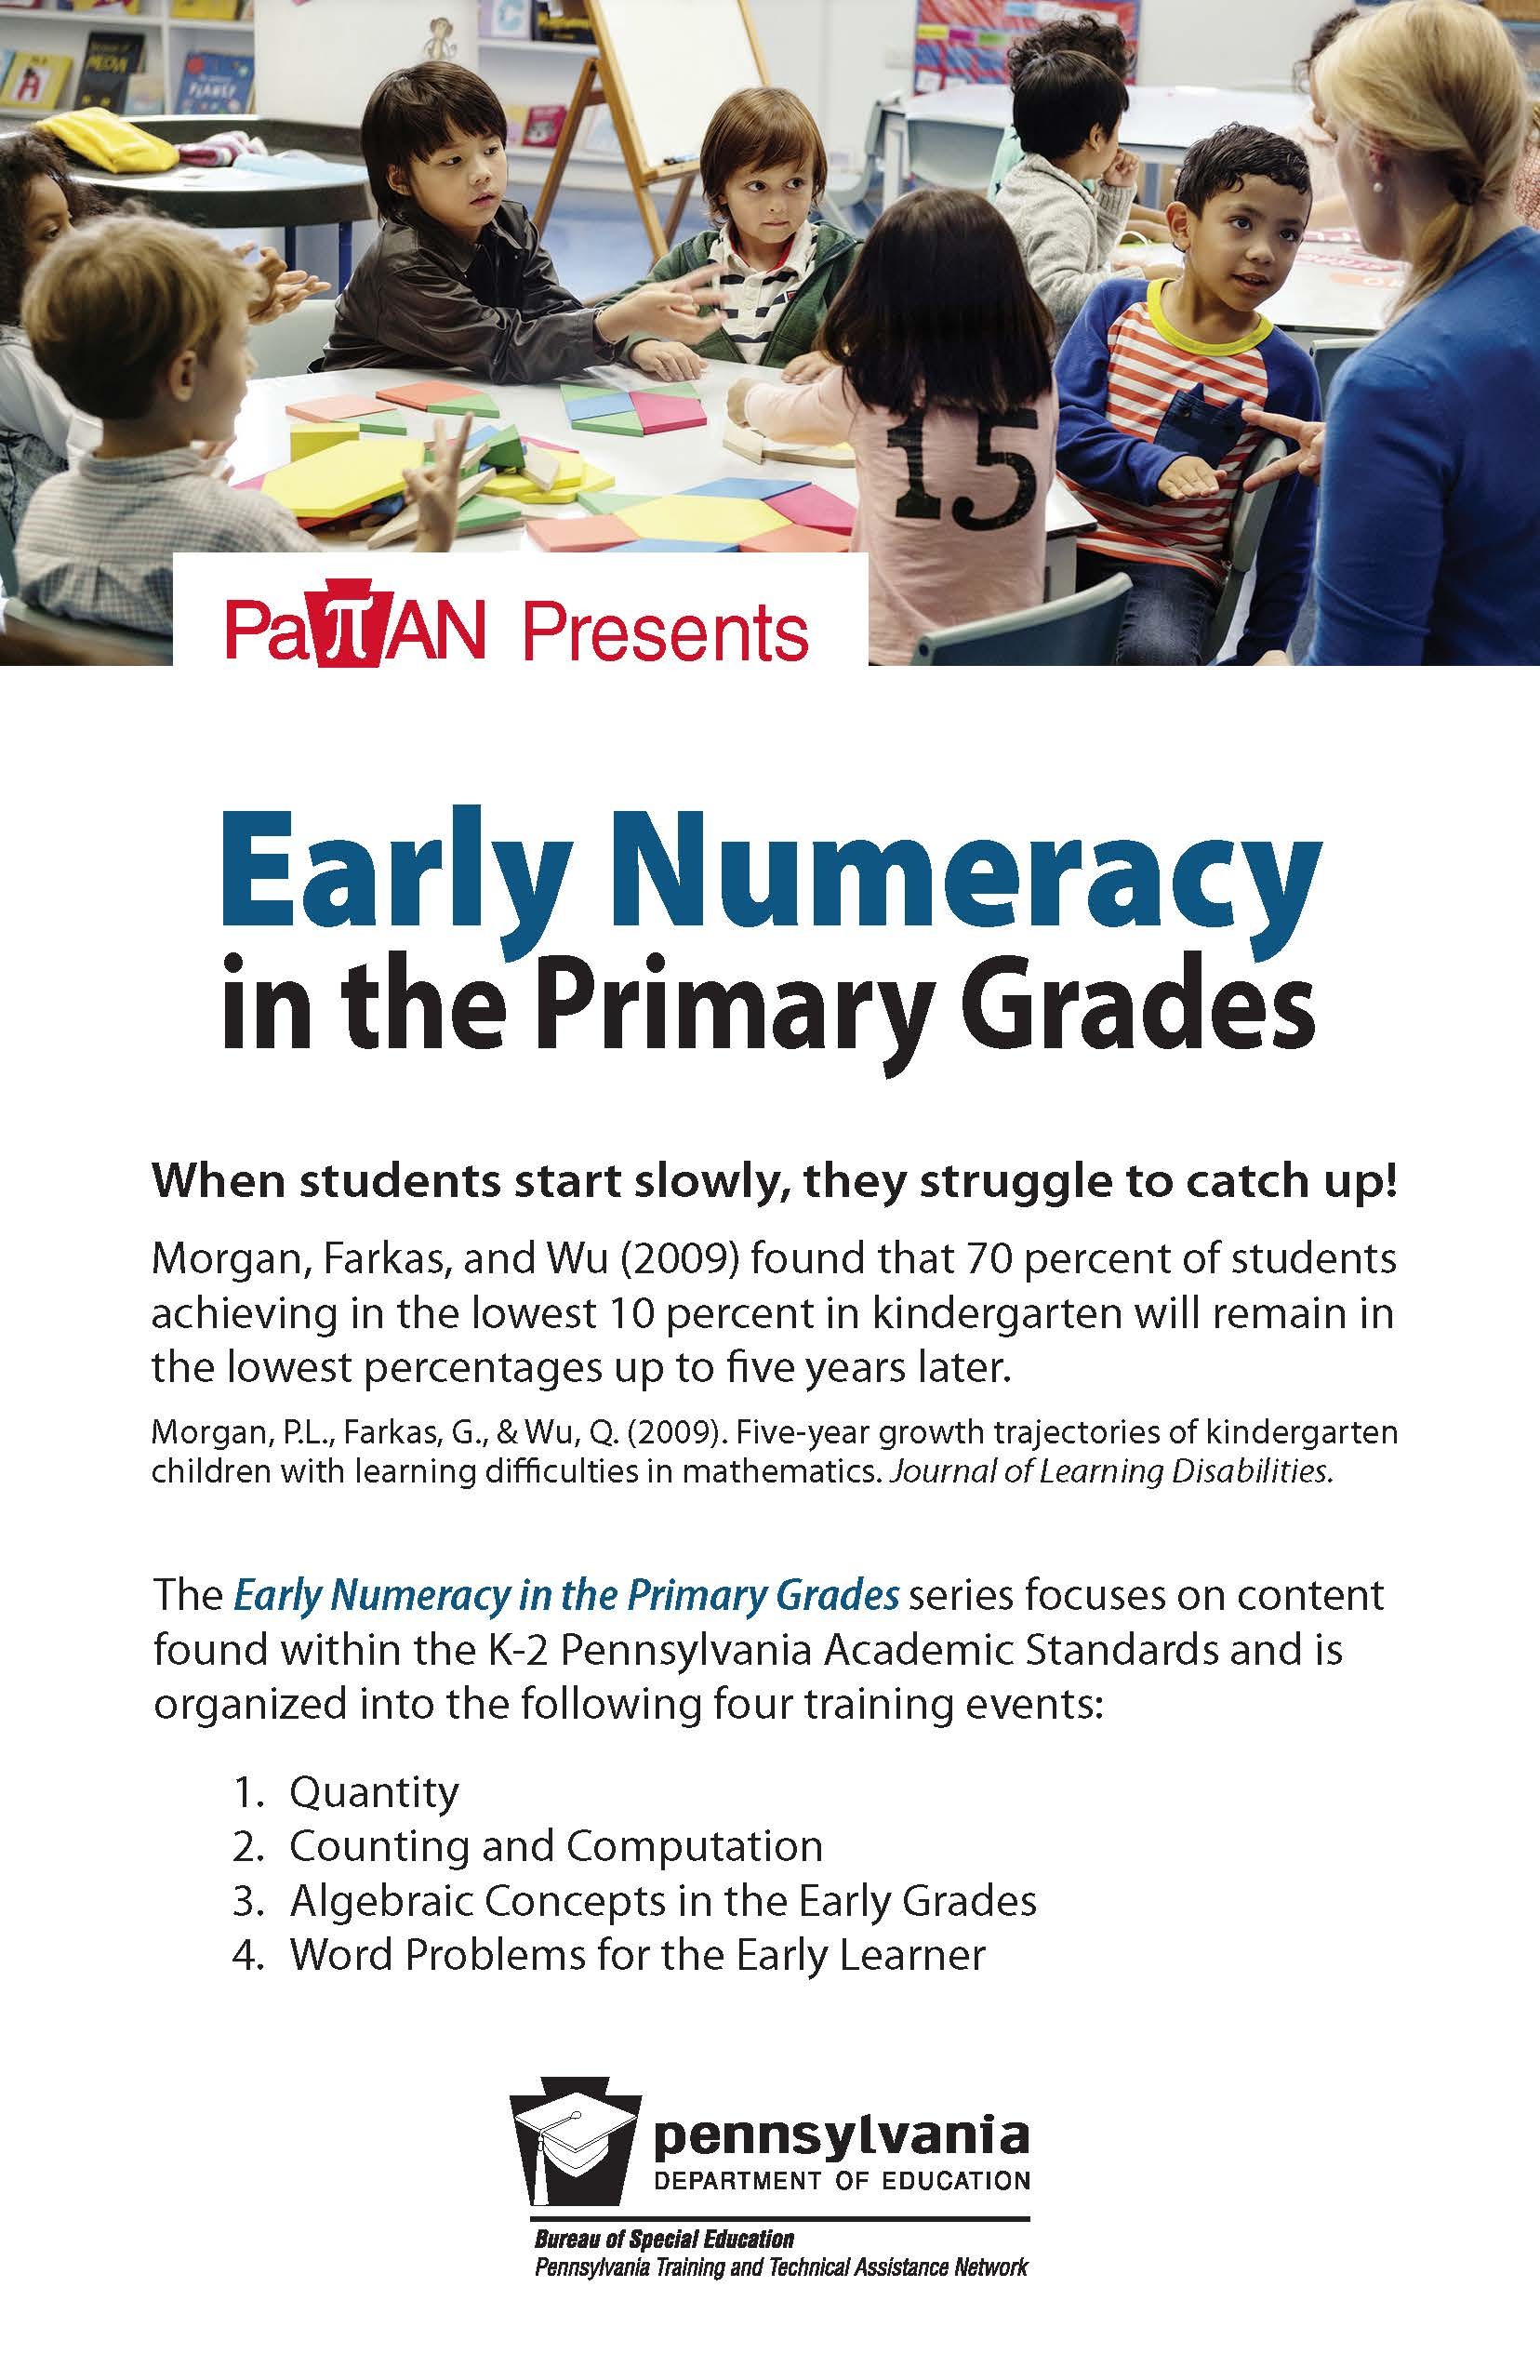 Early Numeracy in the Primary Grades